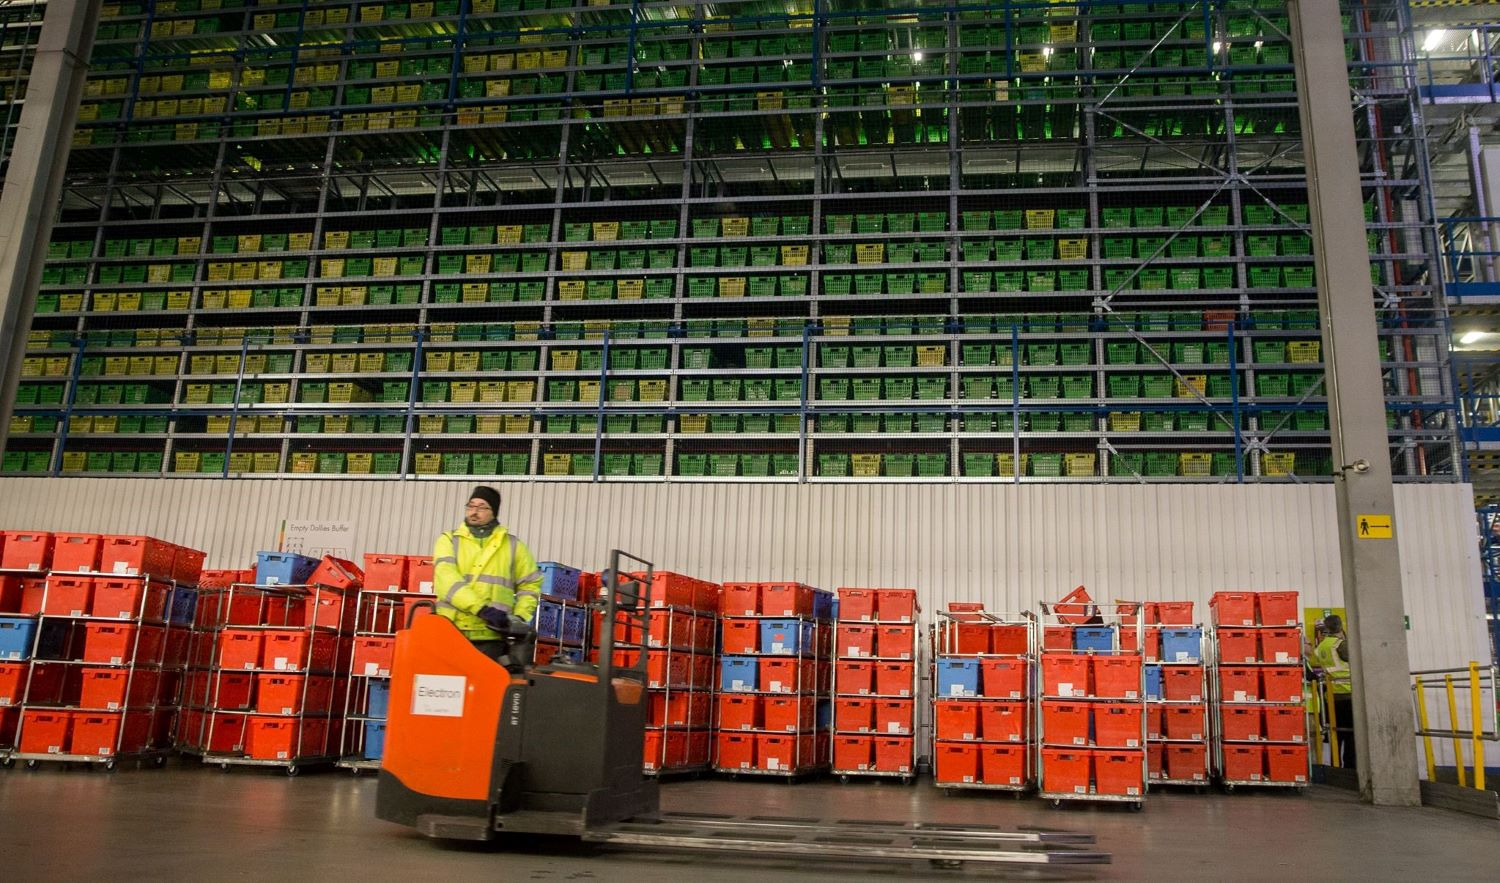 Frontline workers transport goods and mail in a warehouse